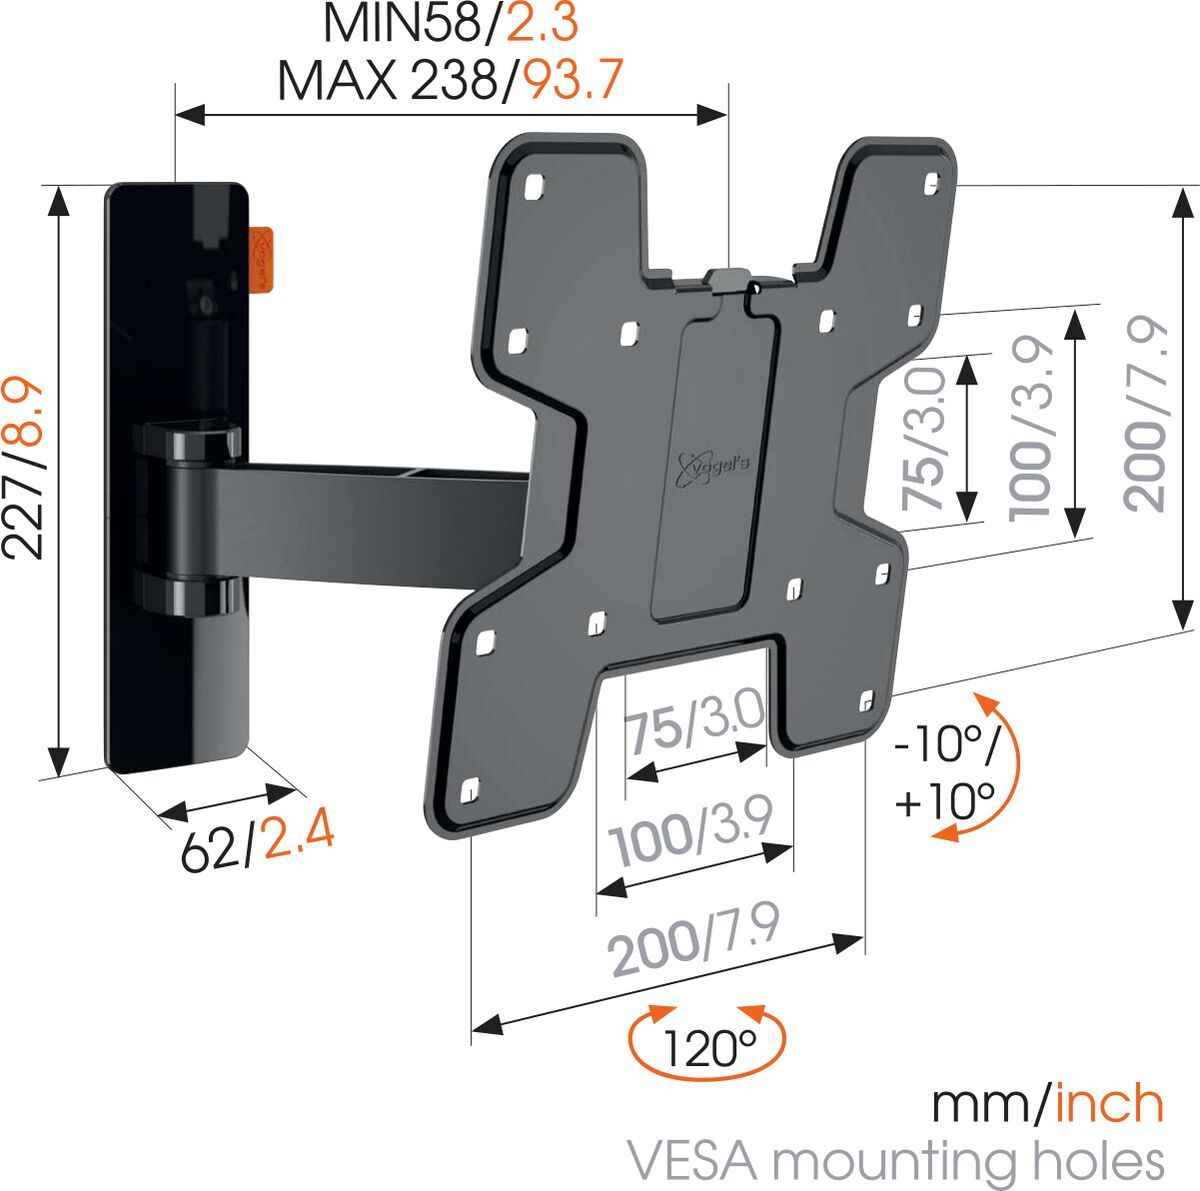 Vogel's W52060 Full-Motion TV Wall Mount (black) - Suitable for 19 up to 43 inch TVs - Motion (up to 120°) - Tilt -10°/+10° - Dimensions